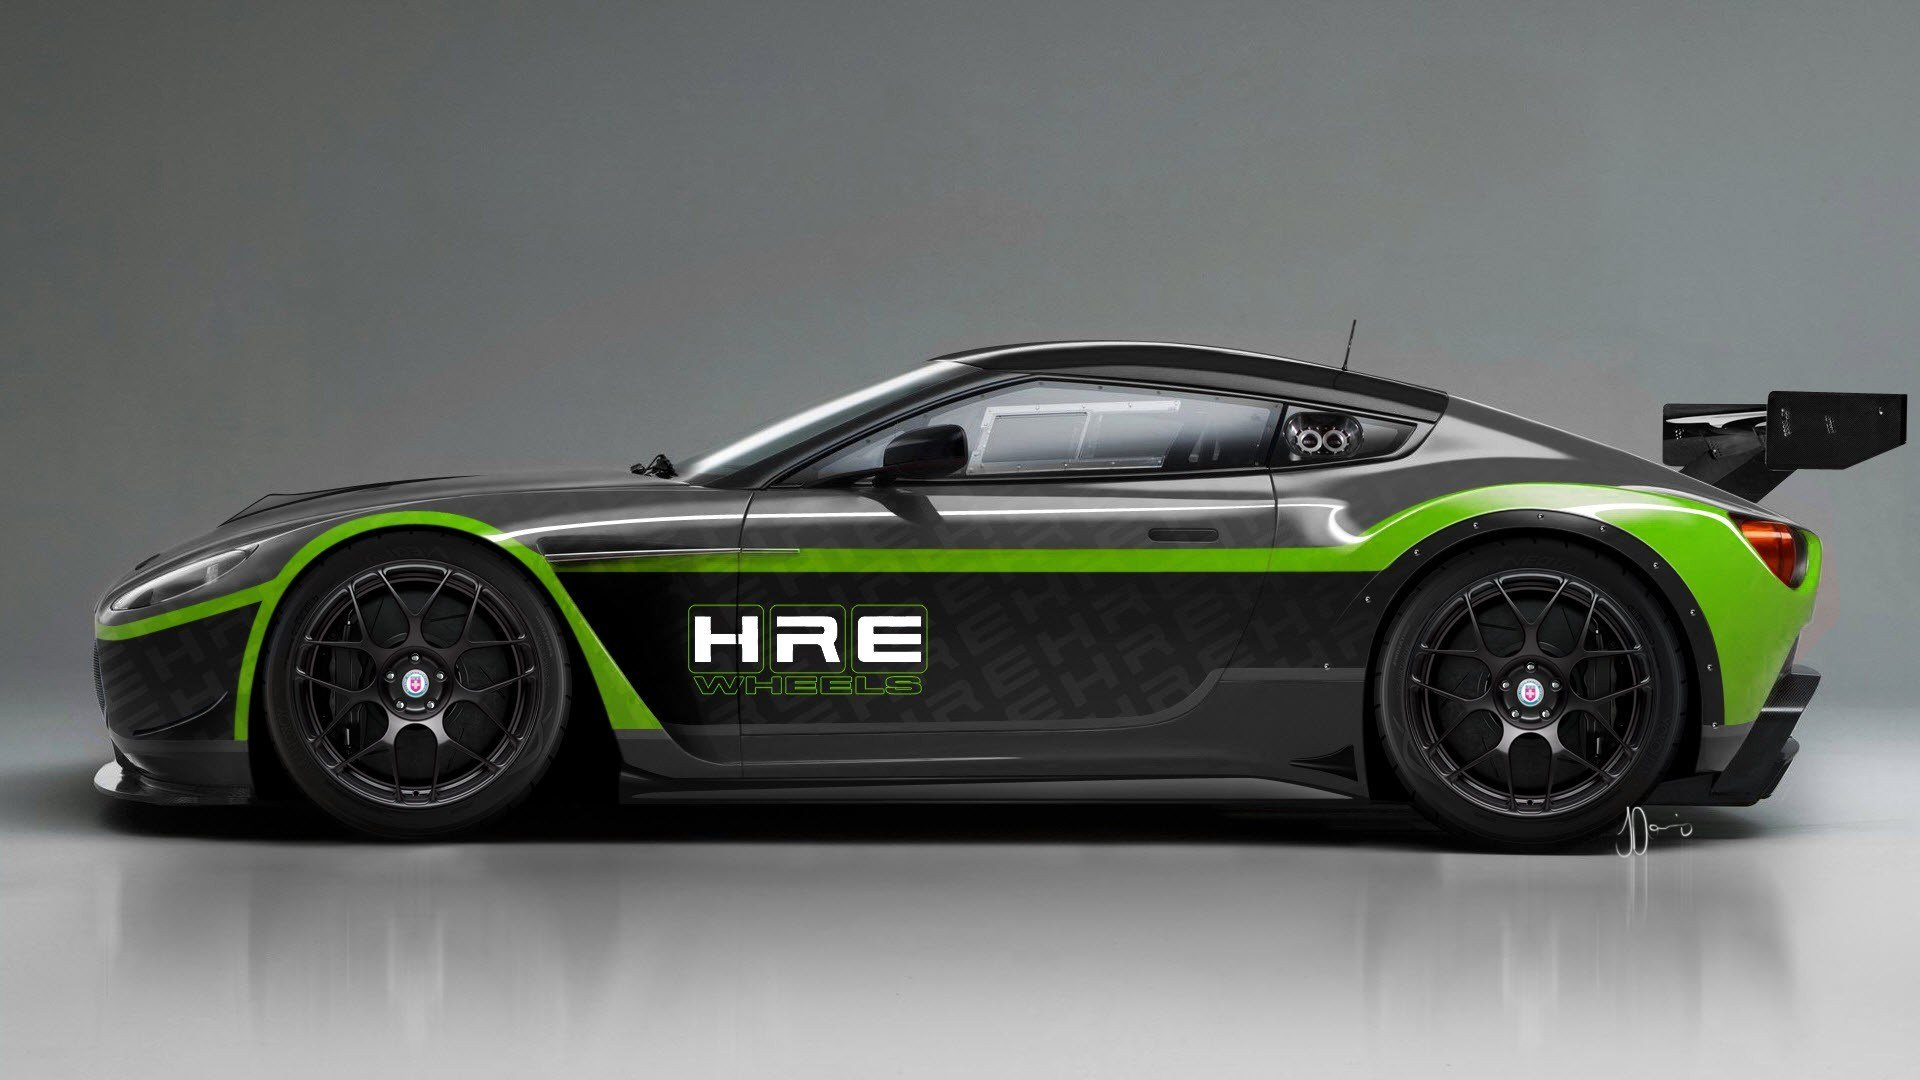 Latest Aston Martin Gt3 Wallpapers Hd Wallpapers Id 10851 Free Download